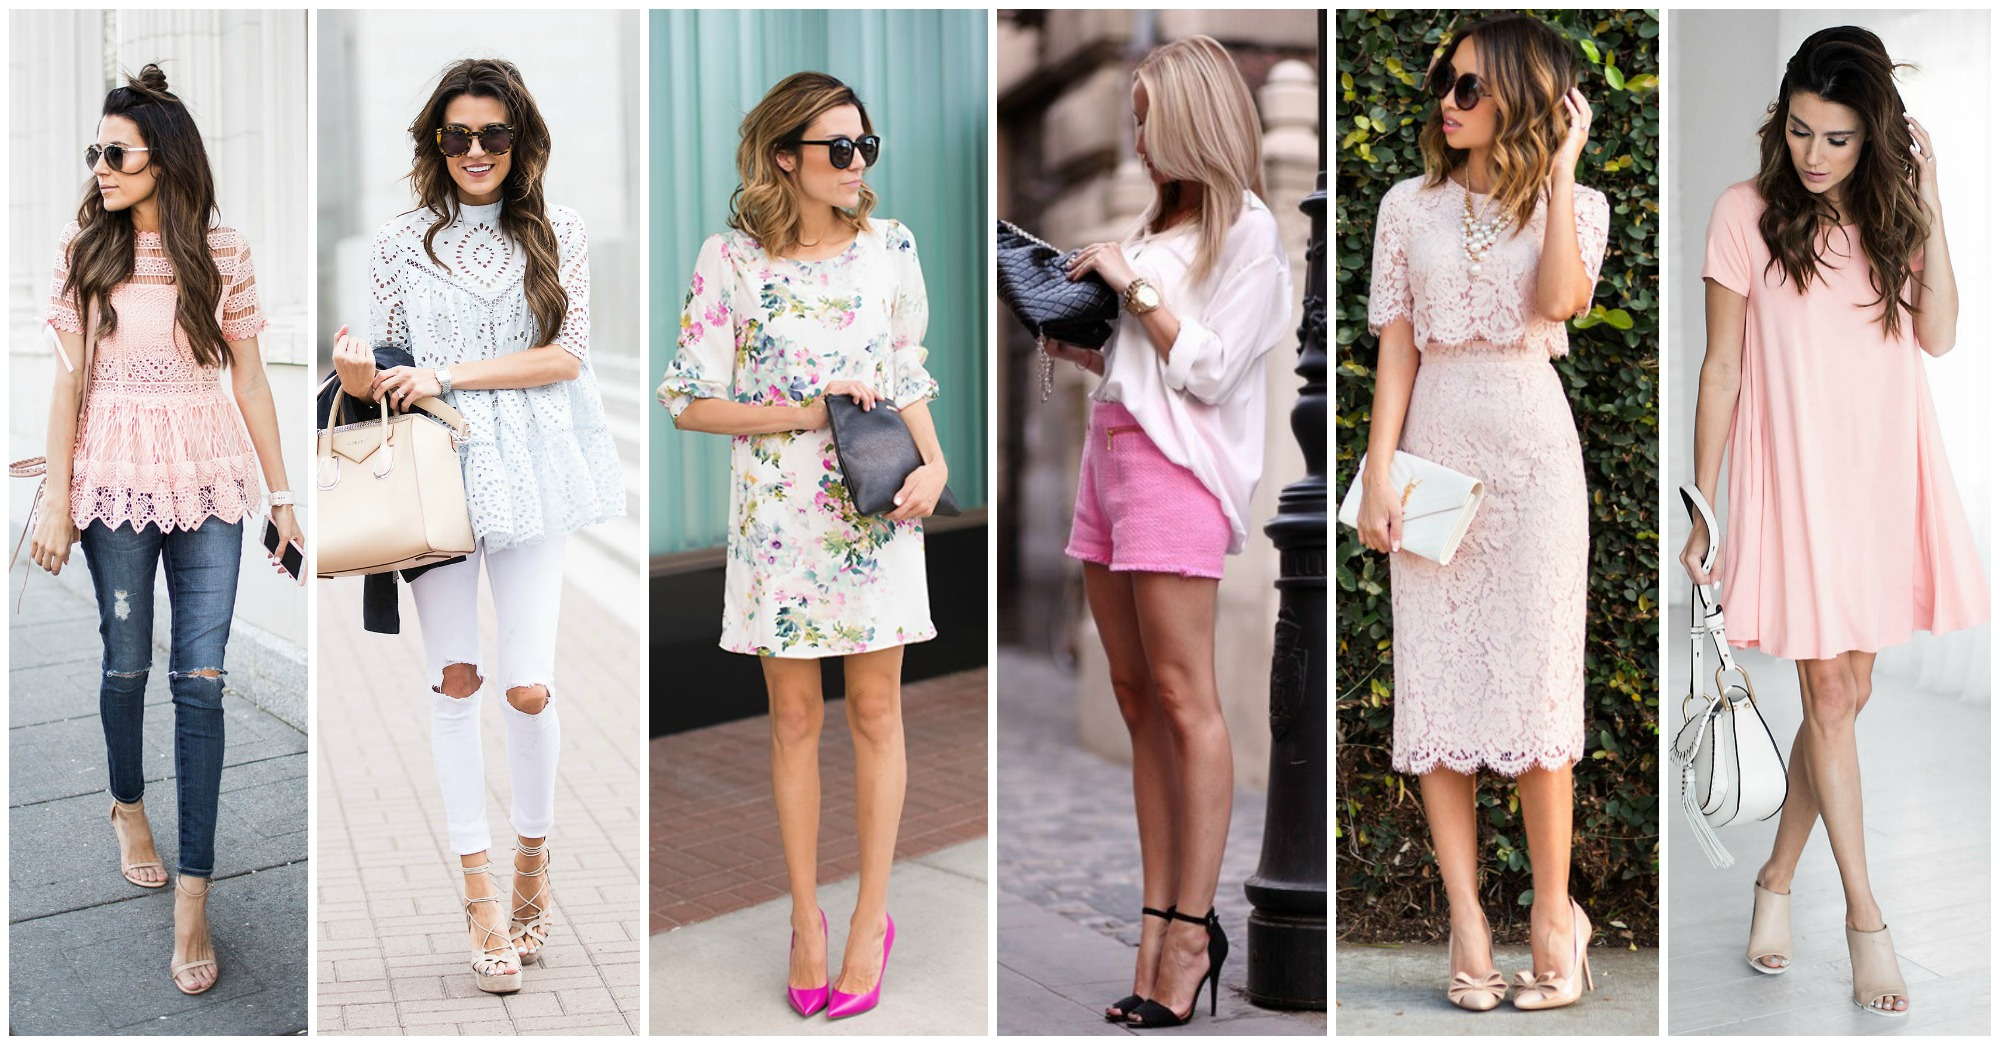 15 Fashionable Outfits to Copy Right Now